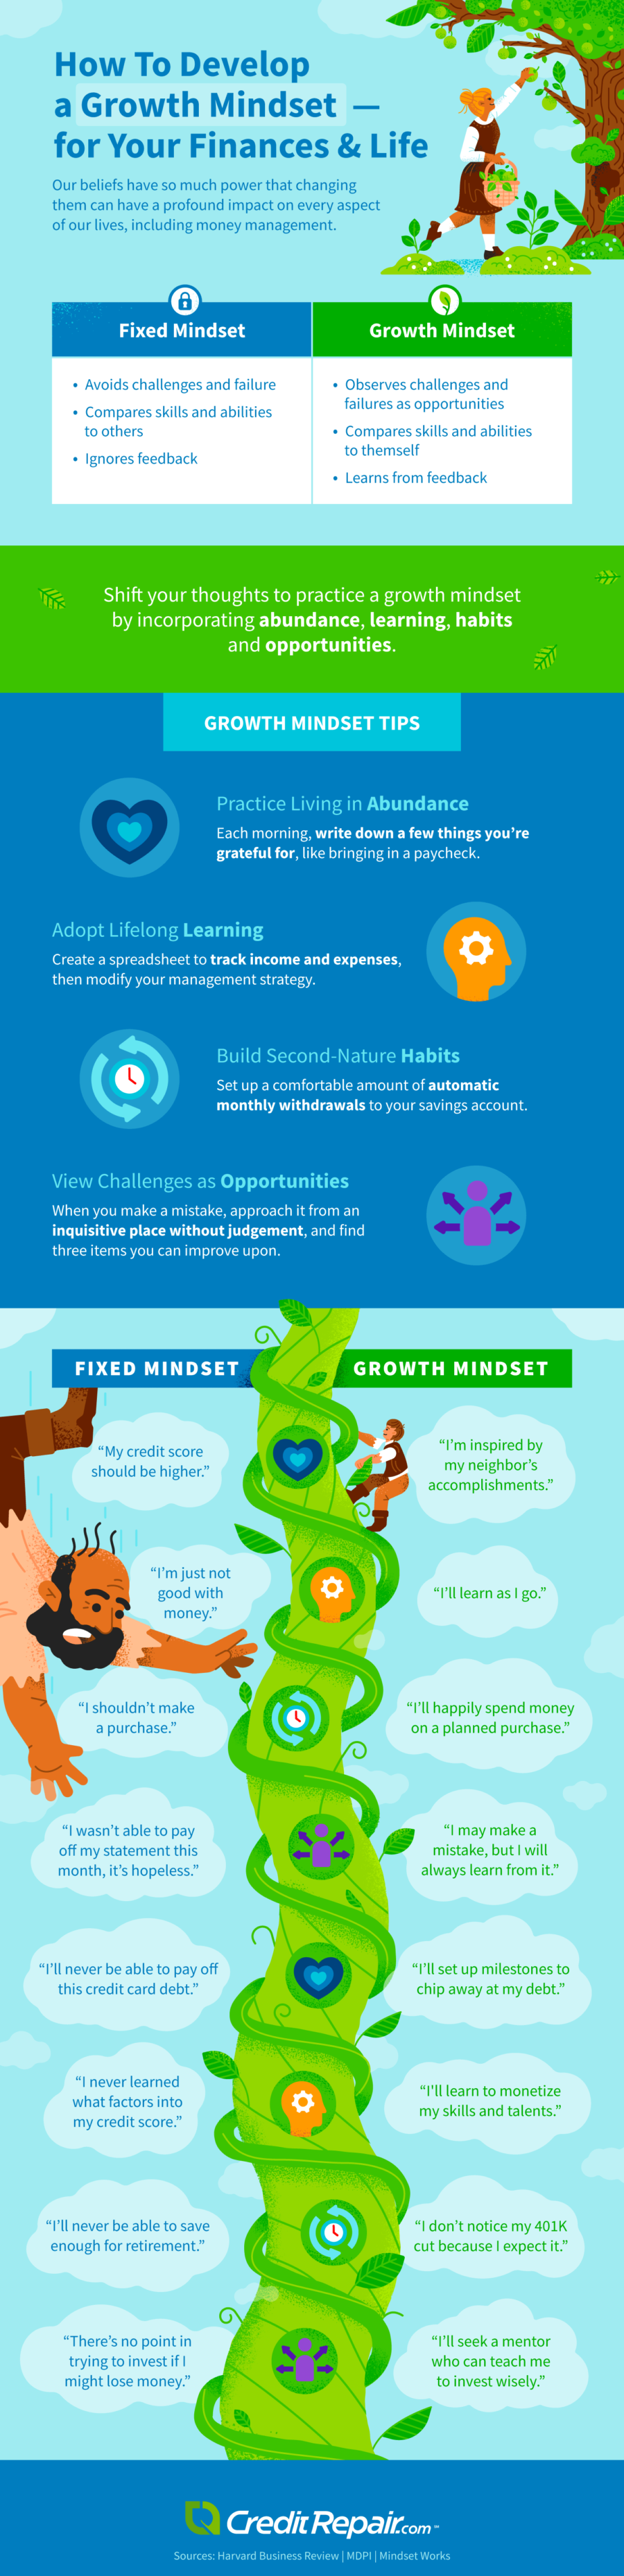 Growth-Mindset-IG-small-1-900x3717